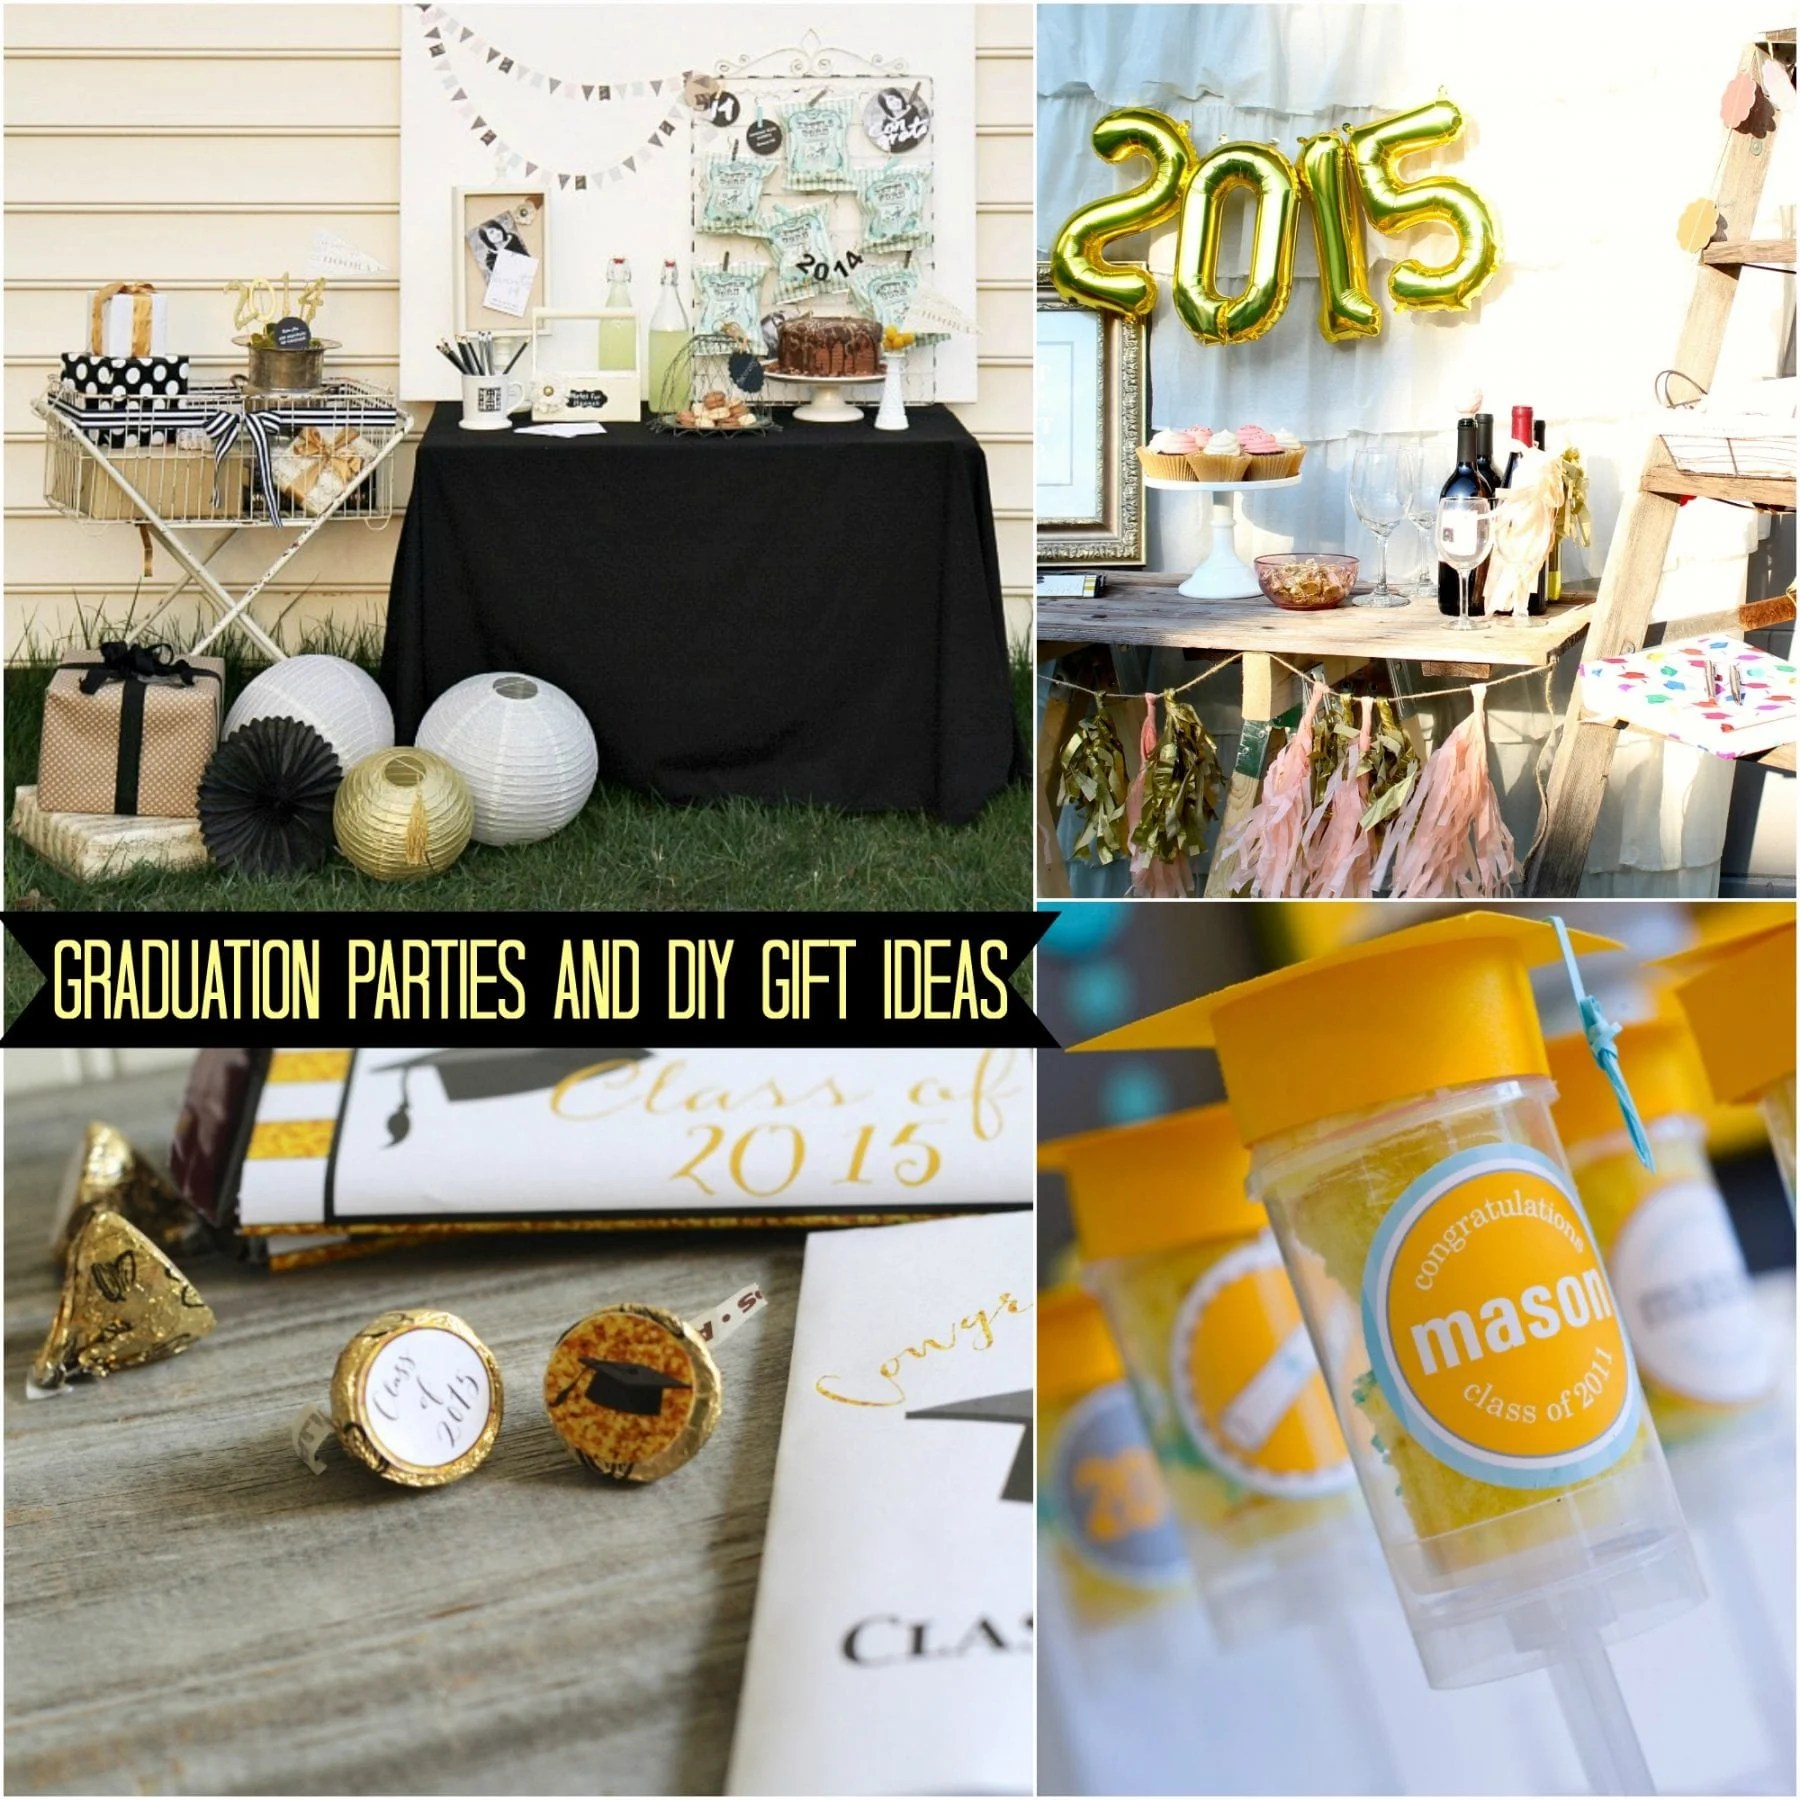 Graduation Party & Gift Ideas for Guys & Girls (Some Shabby Chic!)